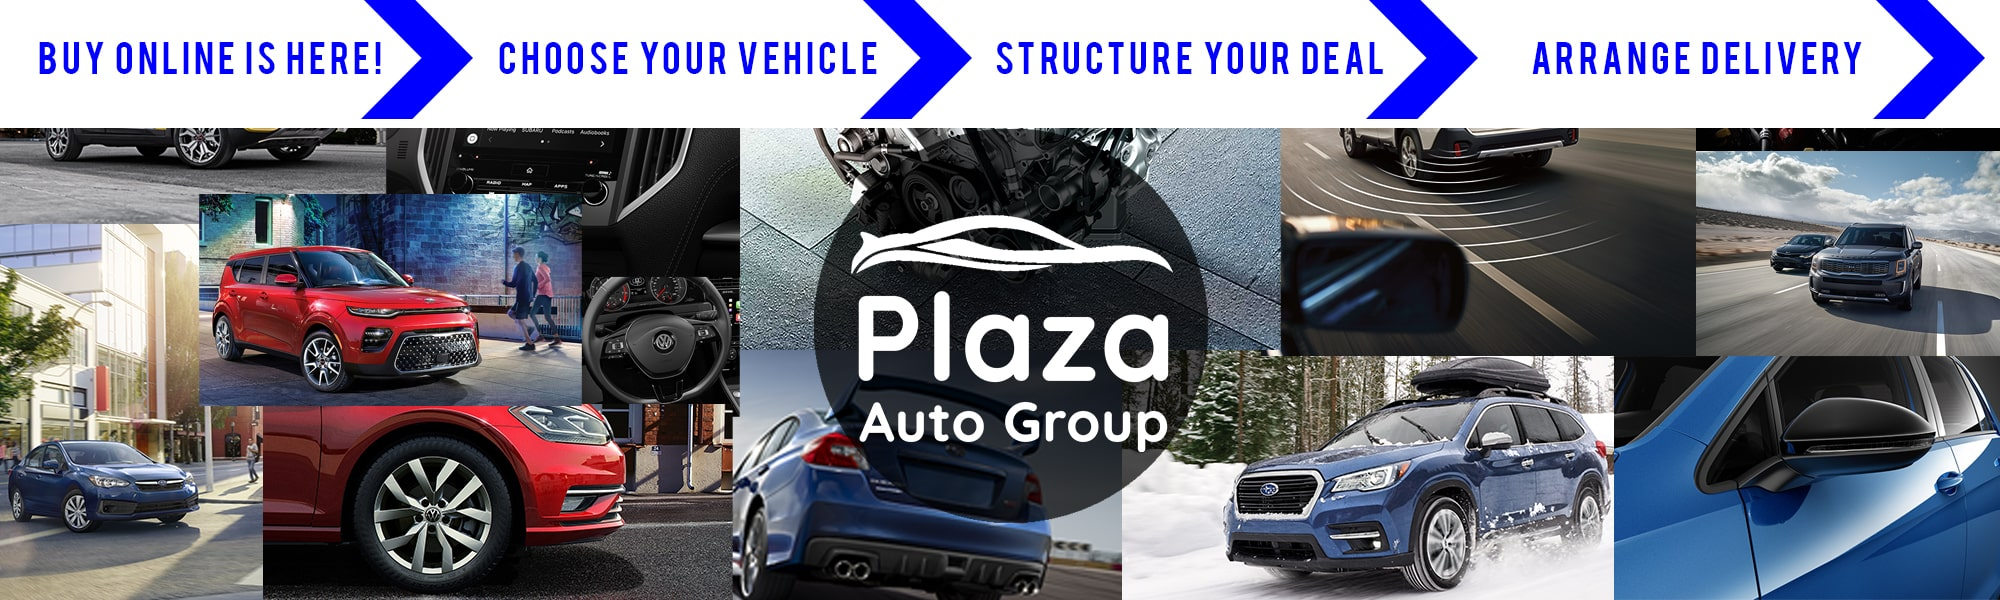 New Subaru Kia, Volkswagen & Subaru Vehicles at Plaza Auto Group Dealerships